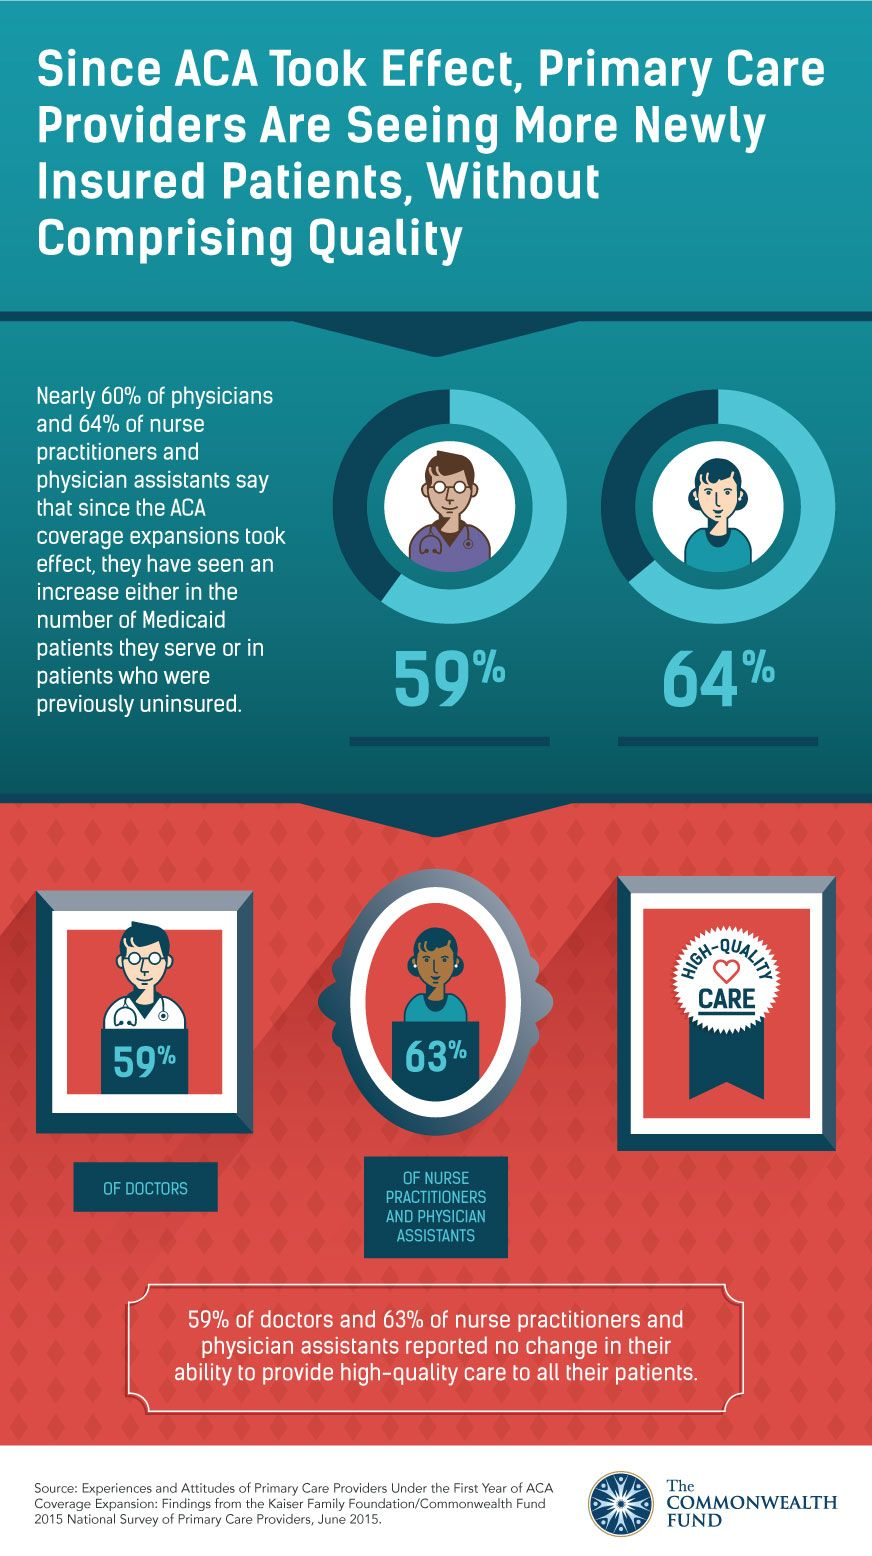 Nearly 60 of physicians and 64 of nurse practitioners